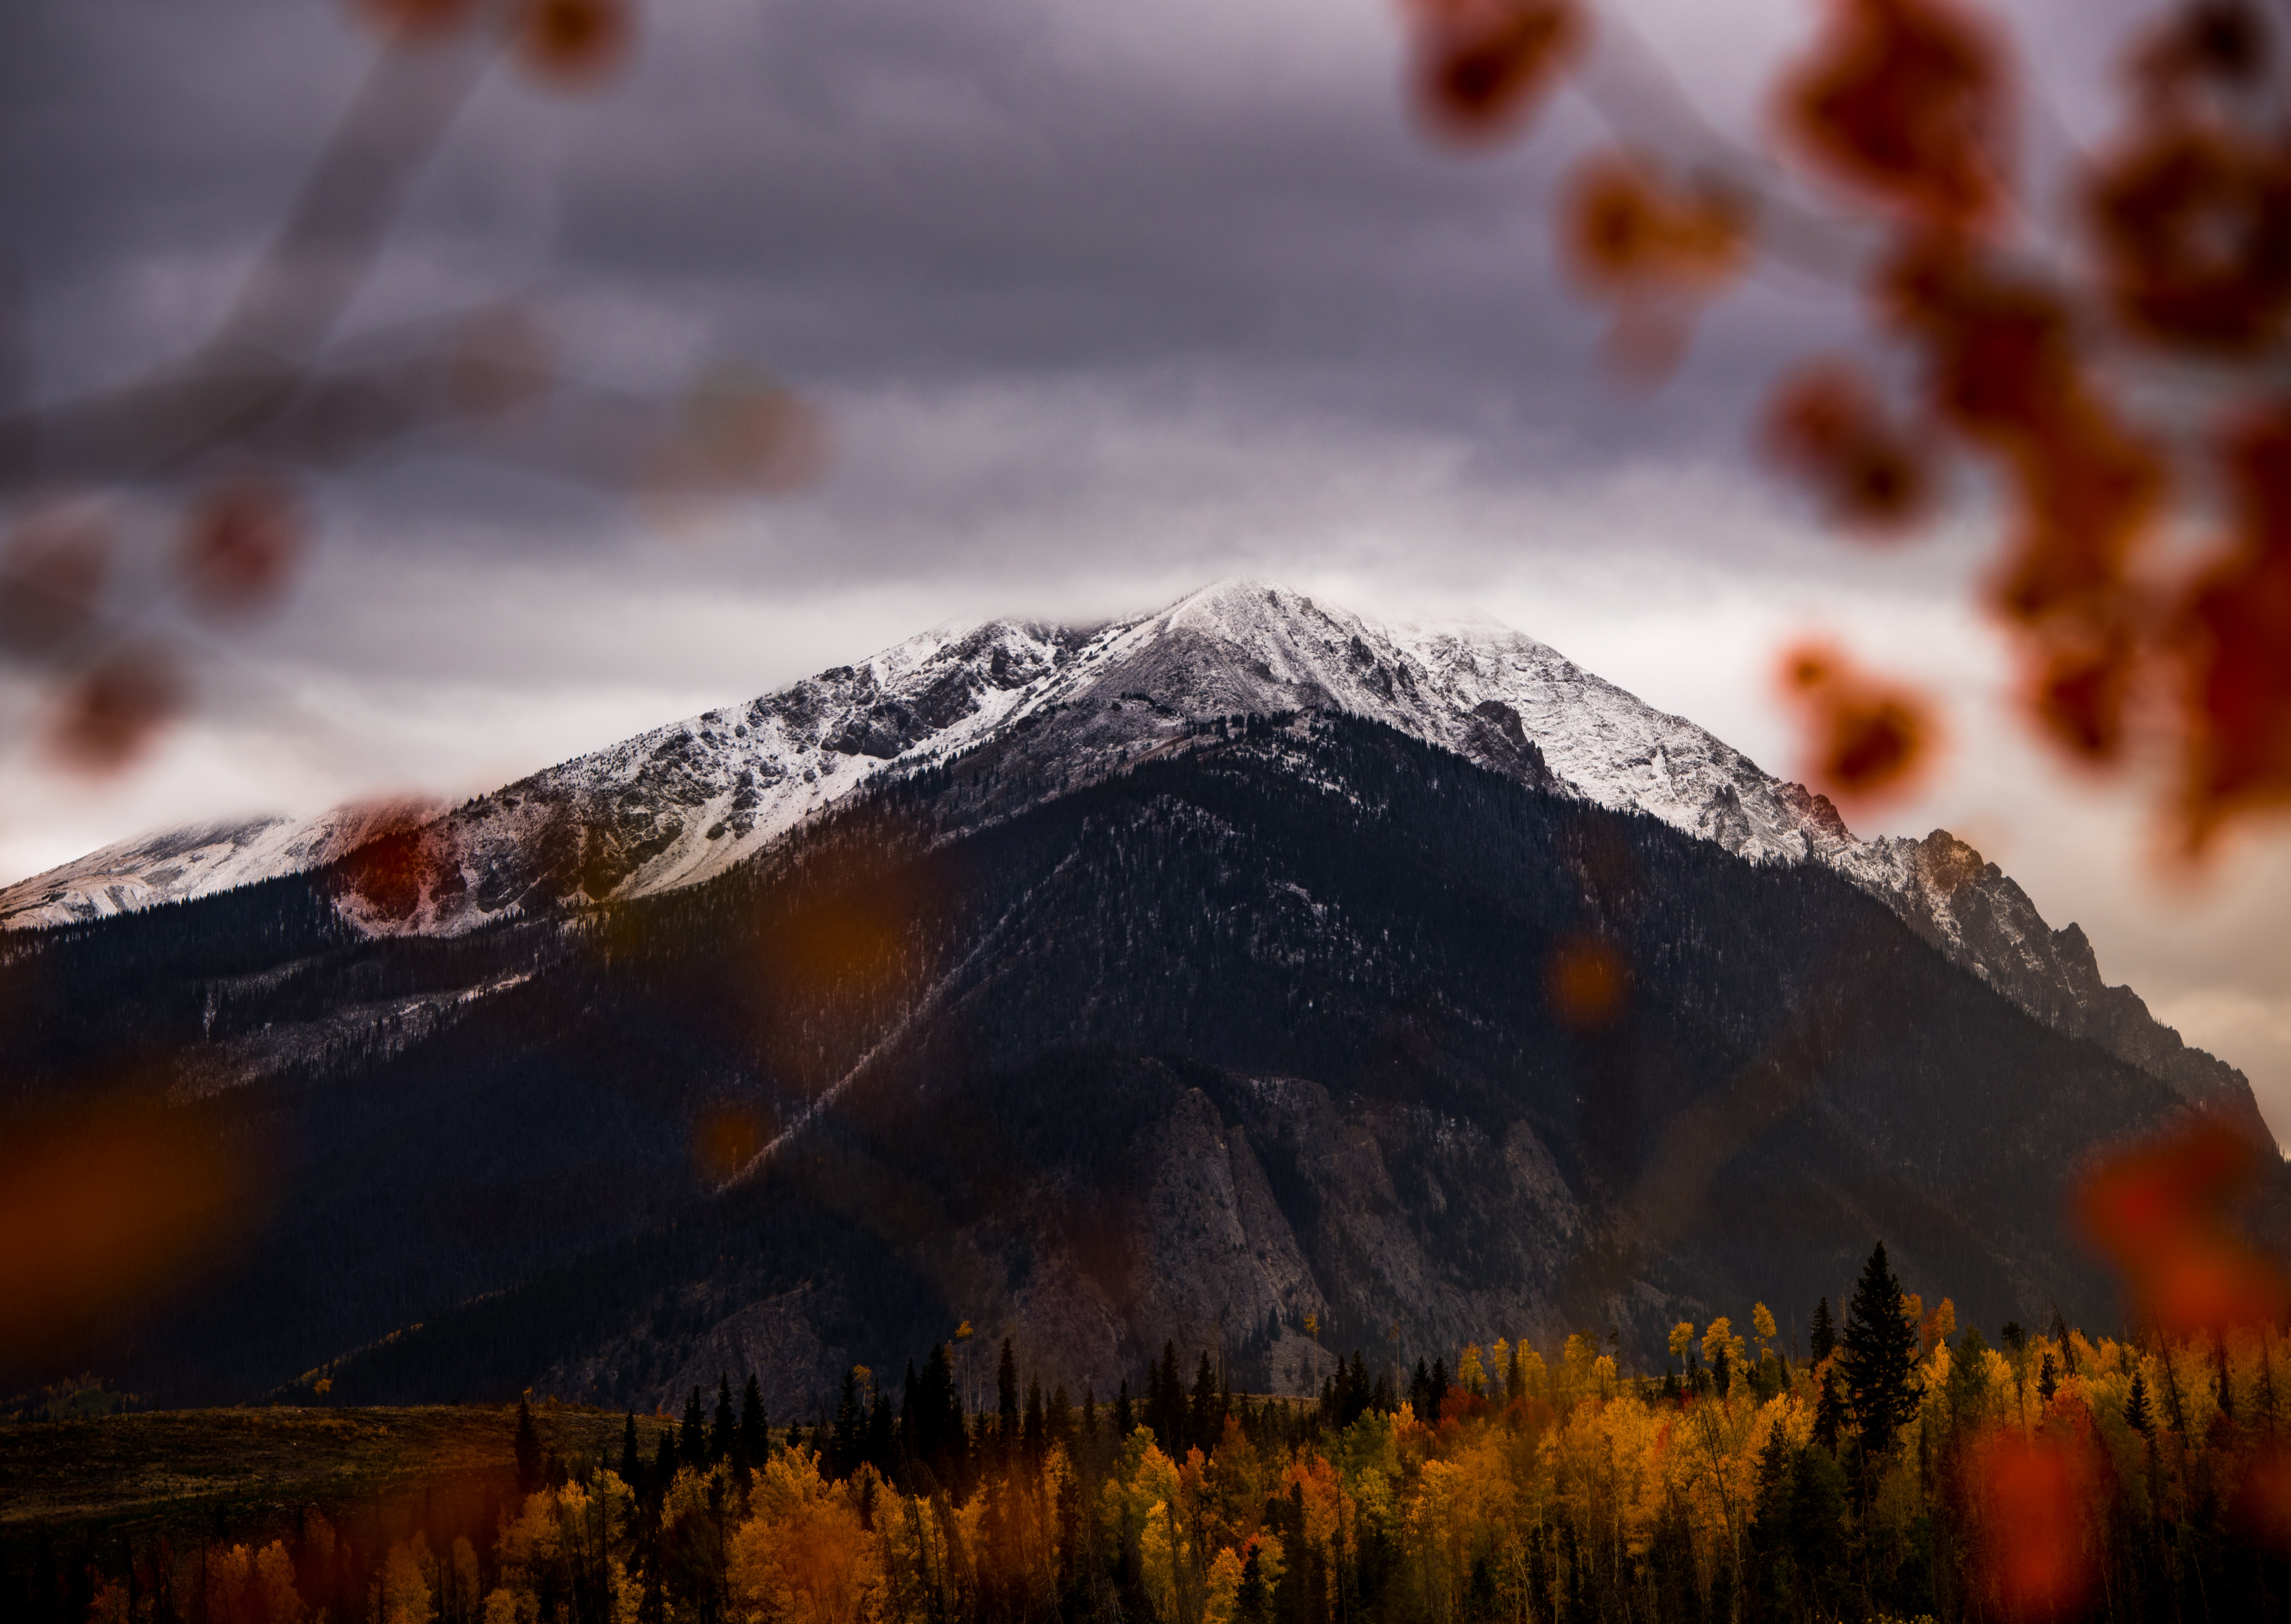 An autumn-colored forest at the foot of a tall snowy mountain in Silverthorne